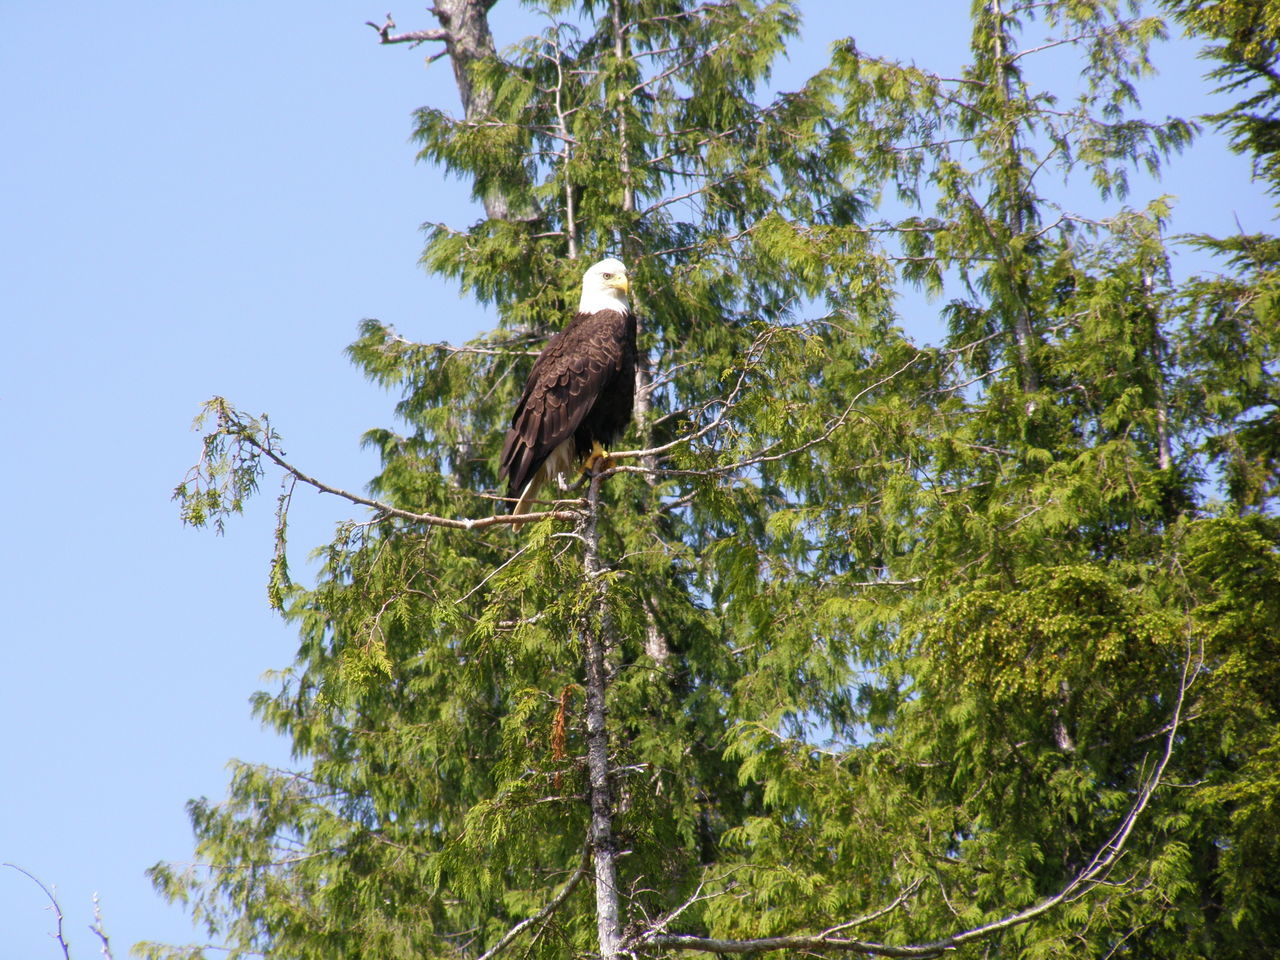 animal, animal themes, plant, animal wildlife, animals in the wild, tree, low angle view, one animal, vertebrate, bird, sky, bird of prey, branch, nature, growth, no people, perching, day, green color, beauty in nature, eagle, outdoors